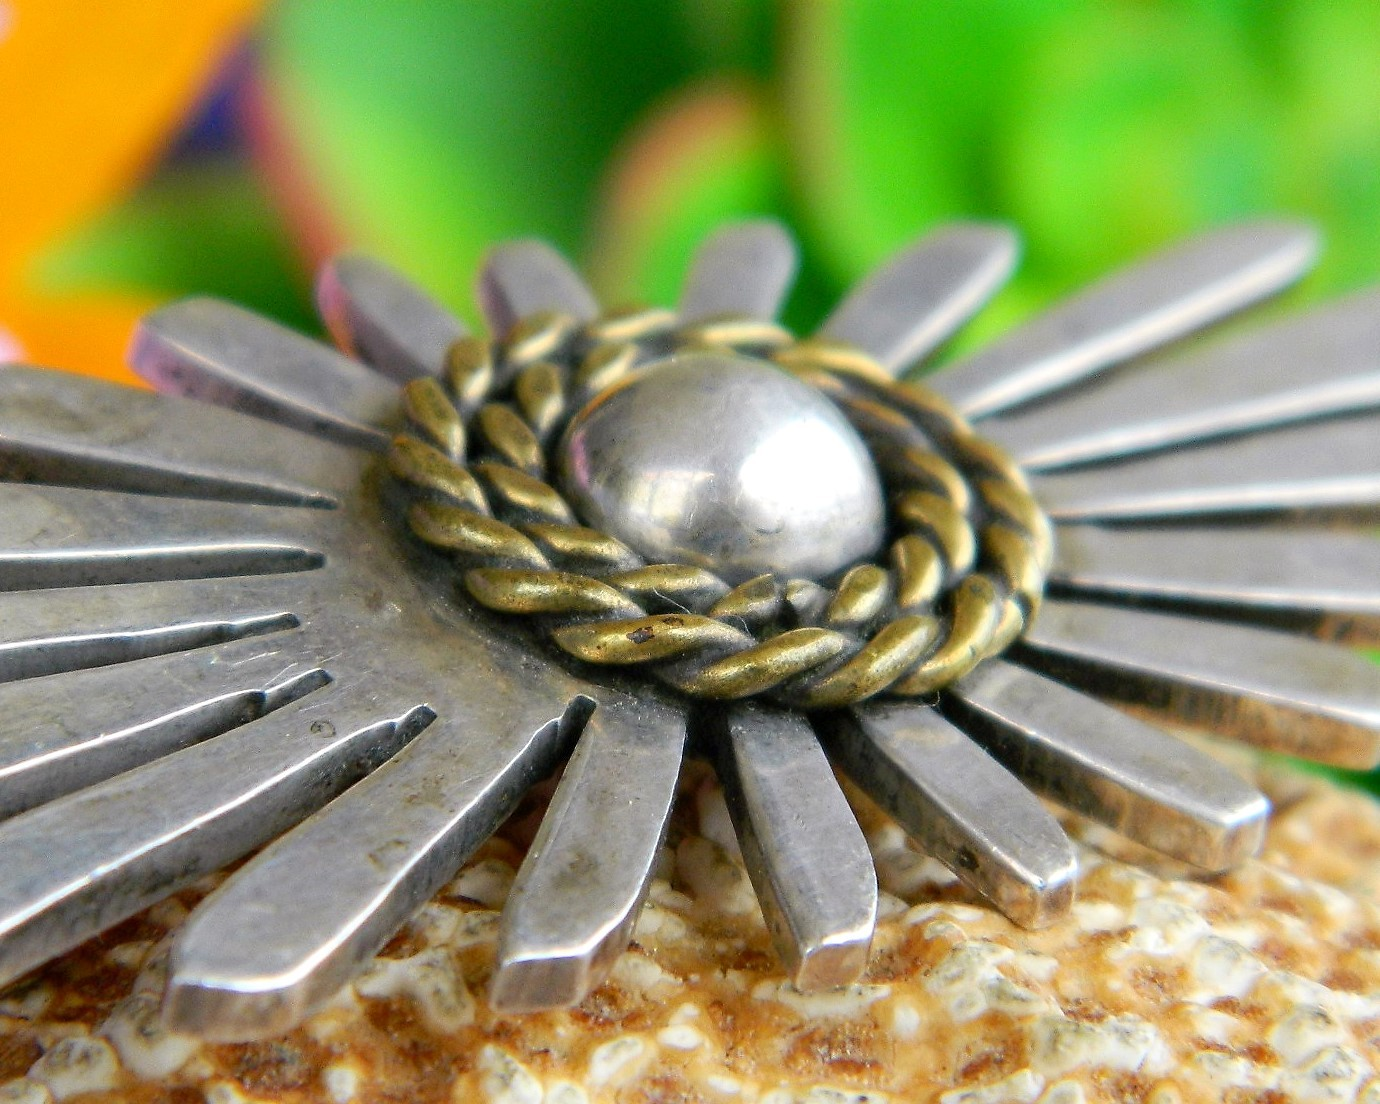 Vintage Taxco Mexico Sterling Silver Dome Modernist Brooch Pin TS 91